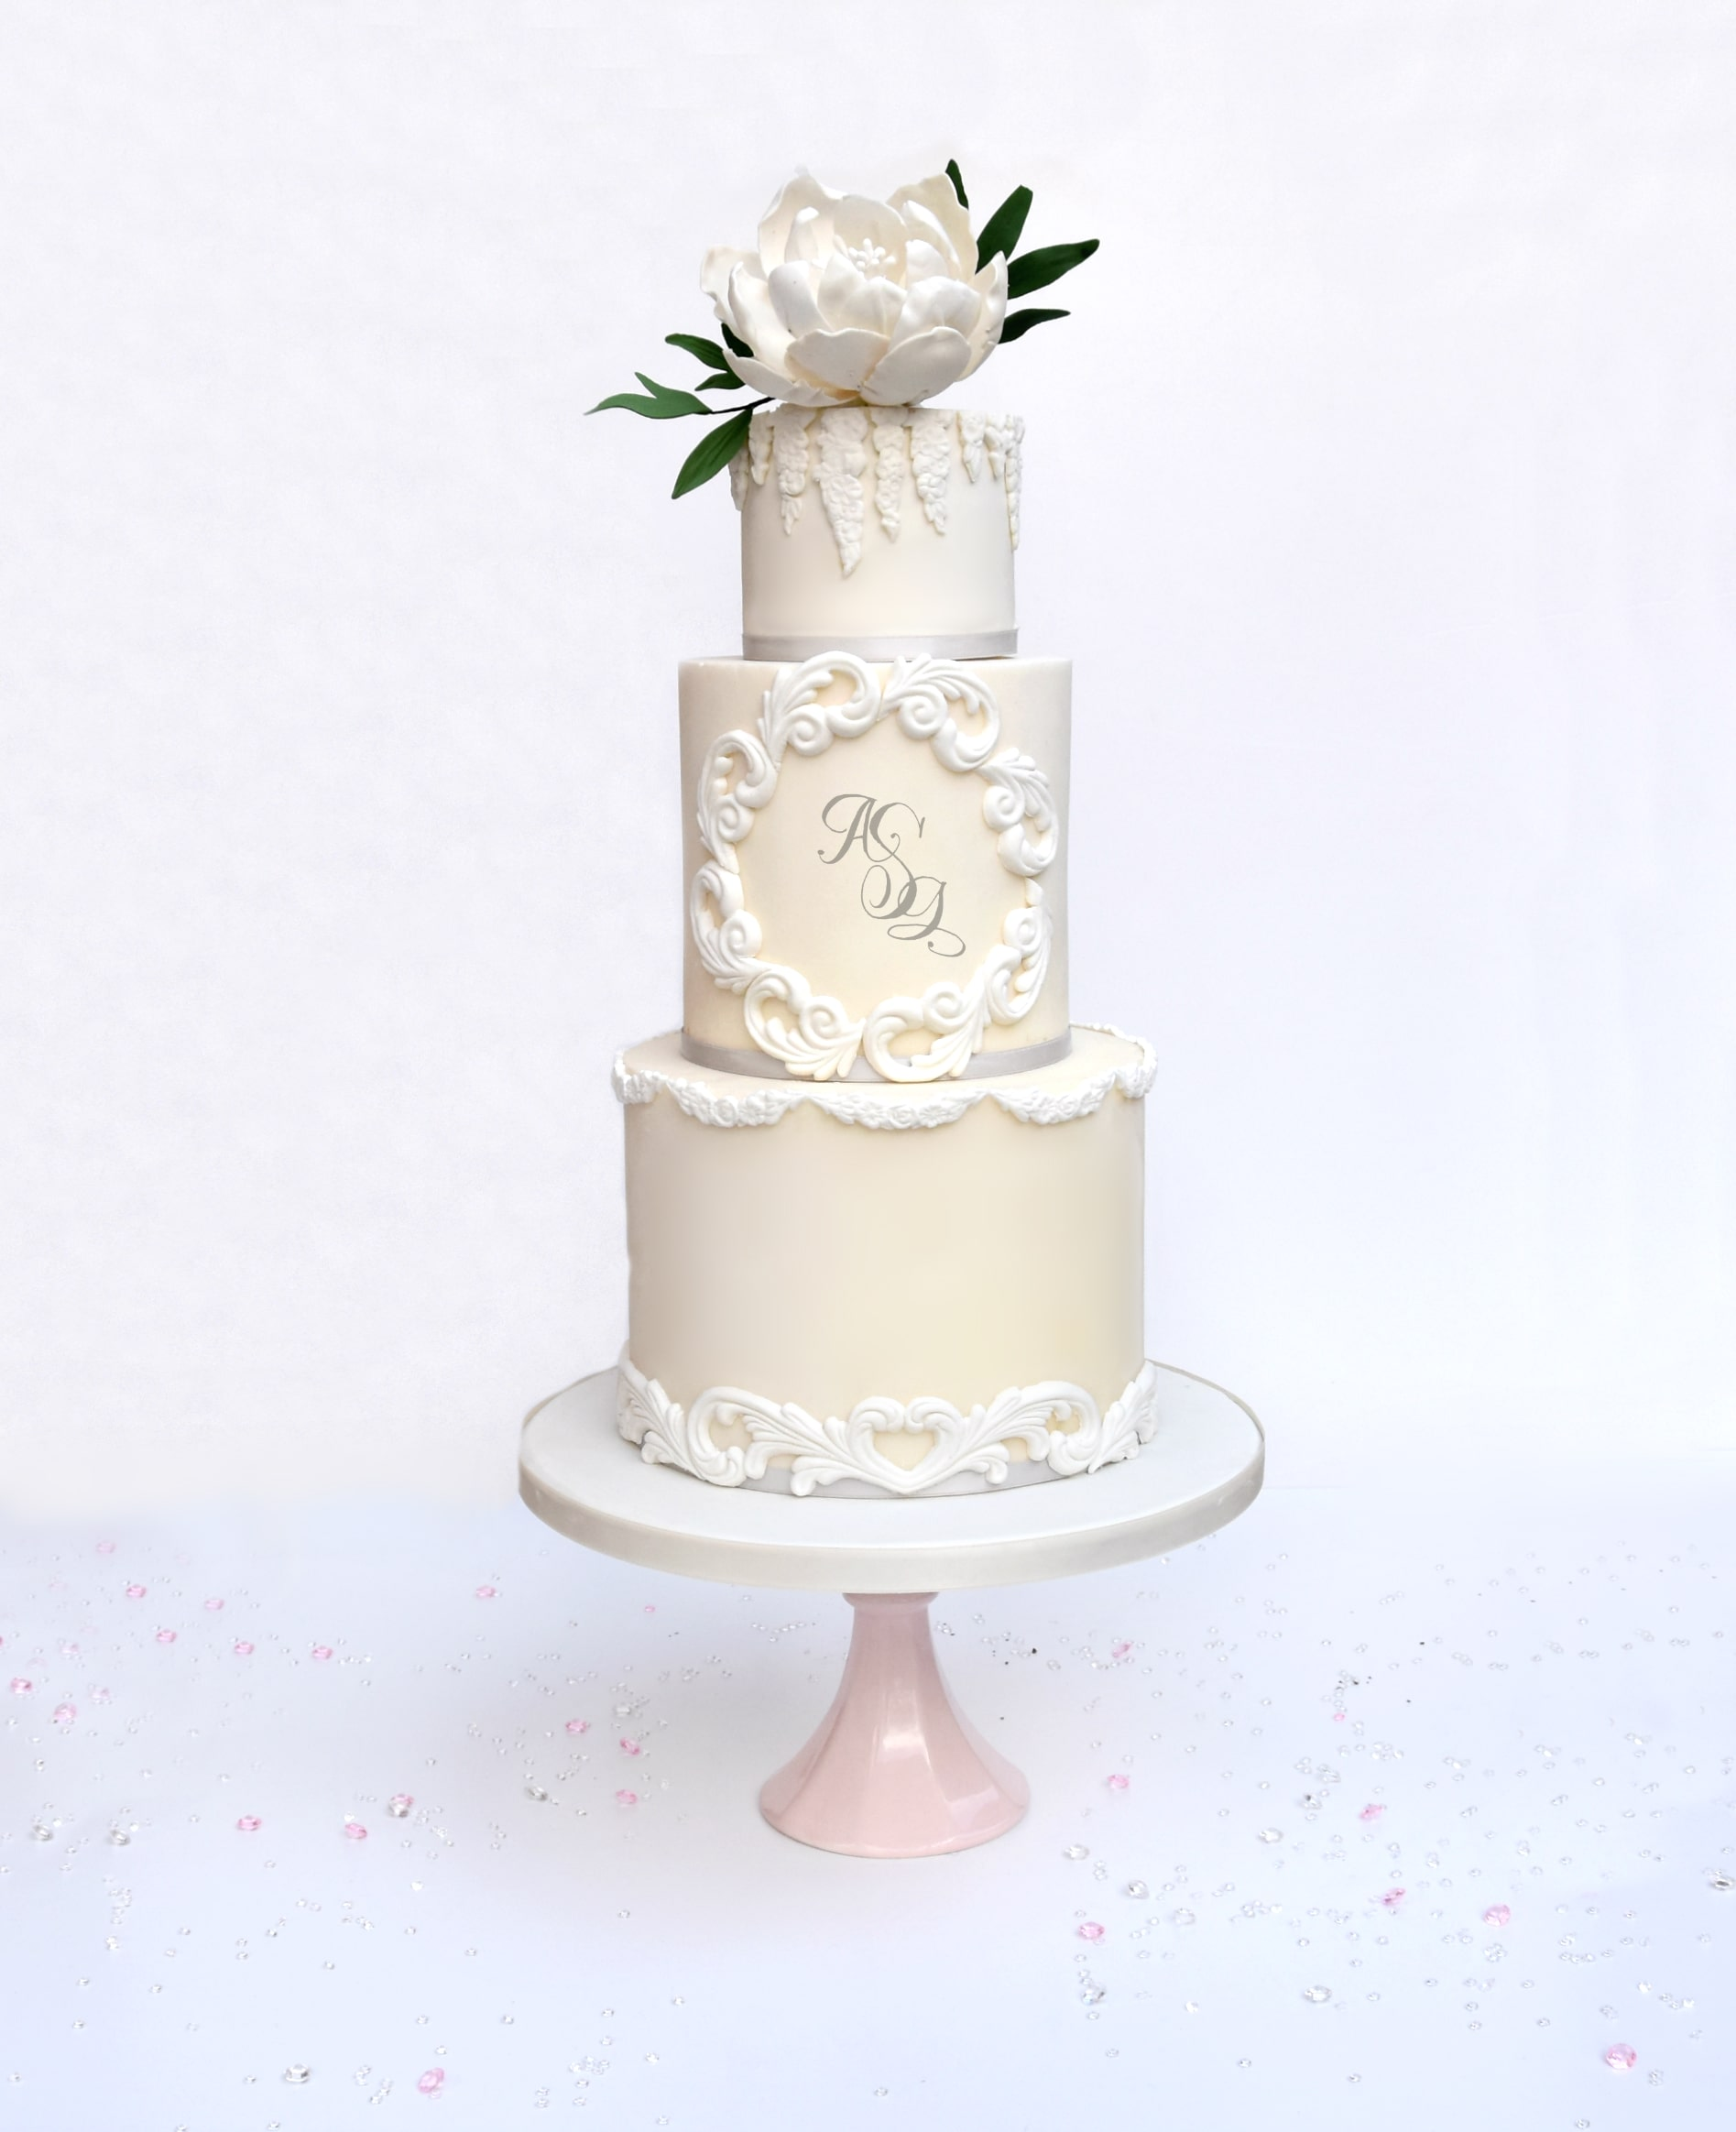 Classic wedding cake design with custom monogram and sugar flower by Meadowsweet Cakes for a Cambridgeshire wedding